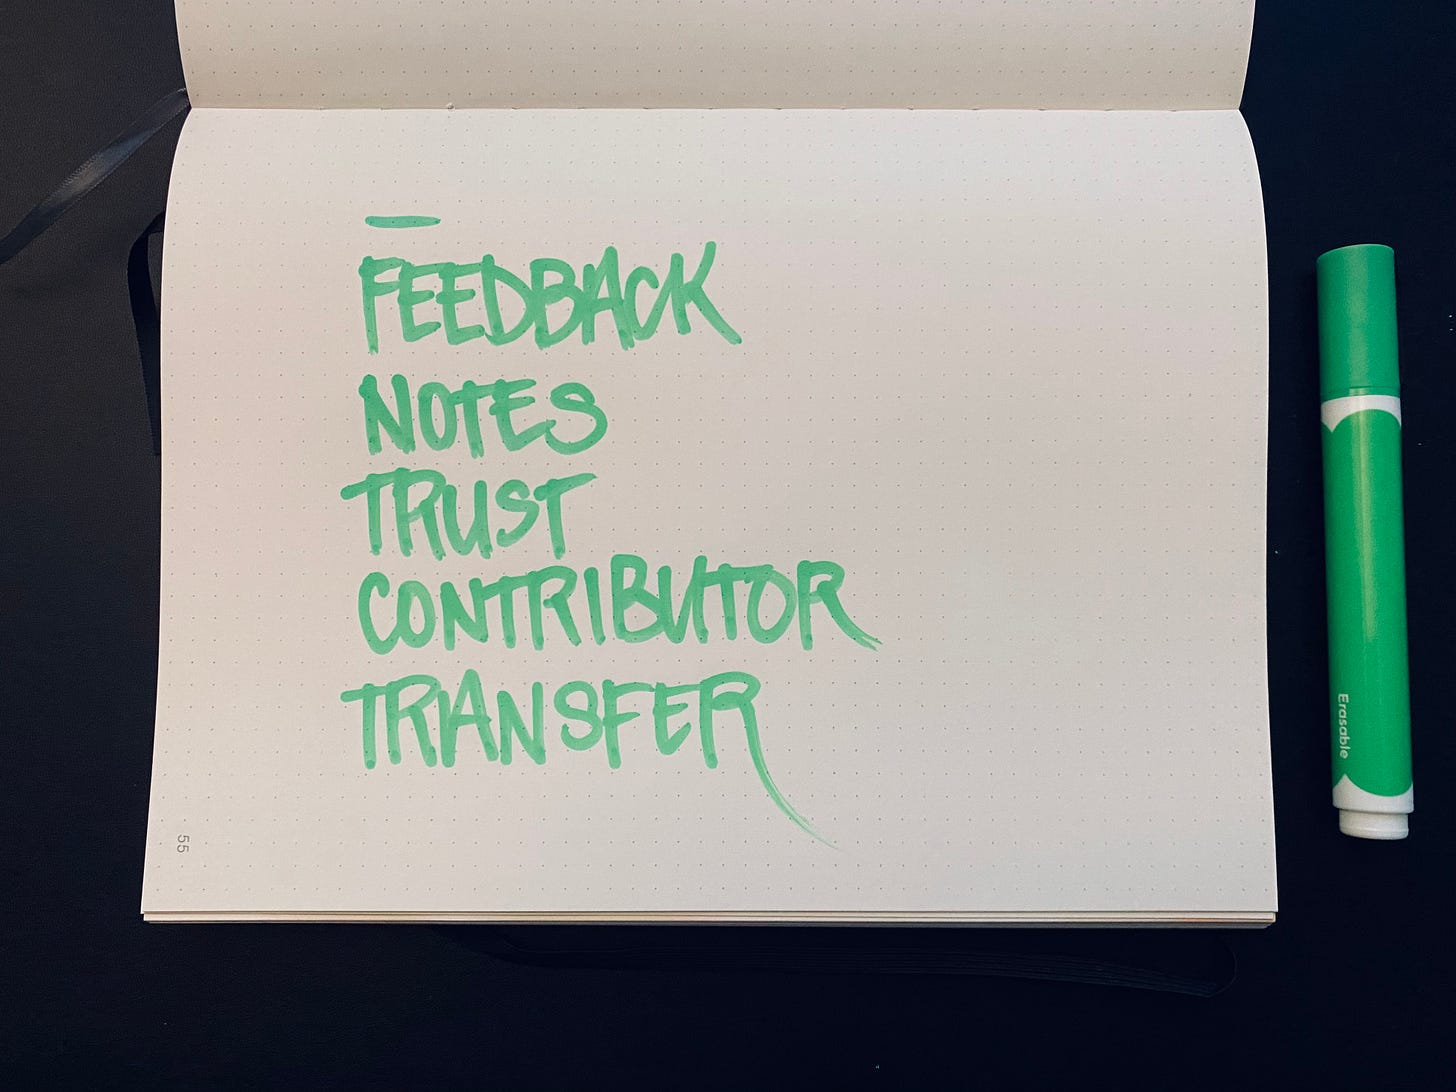 words written in green paint, in notebook page